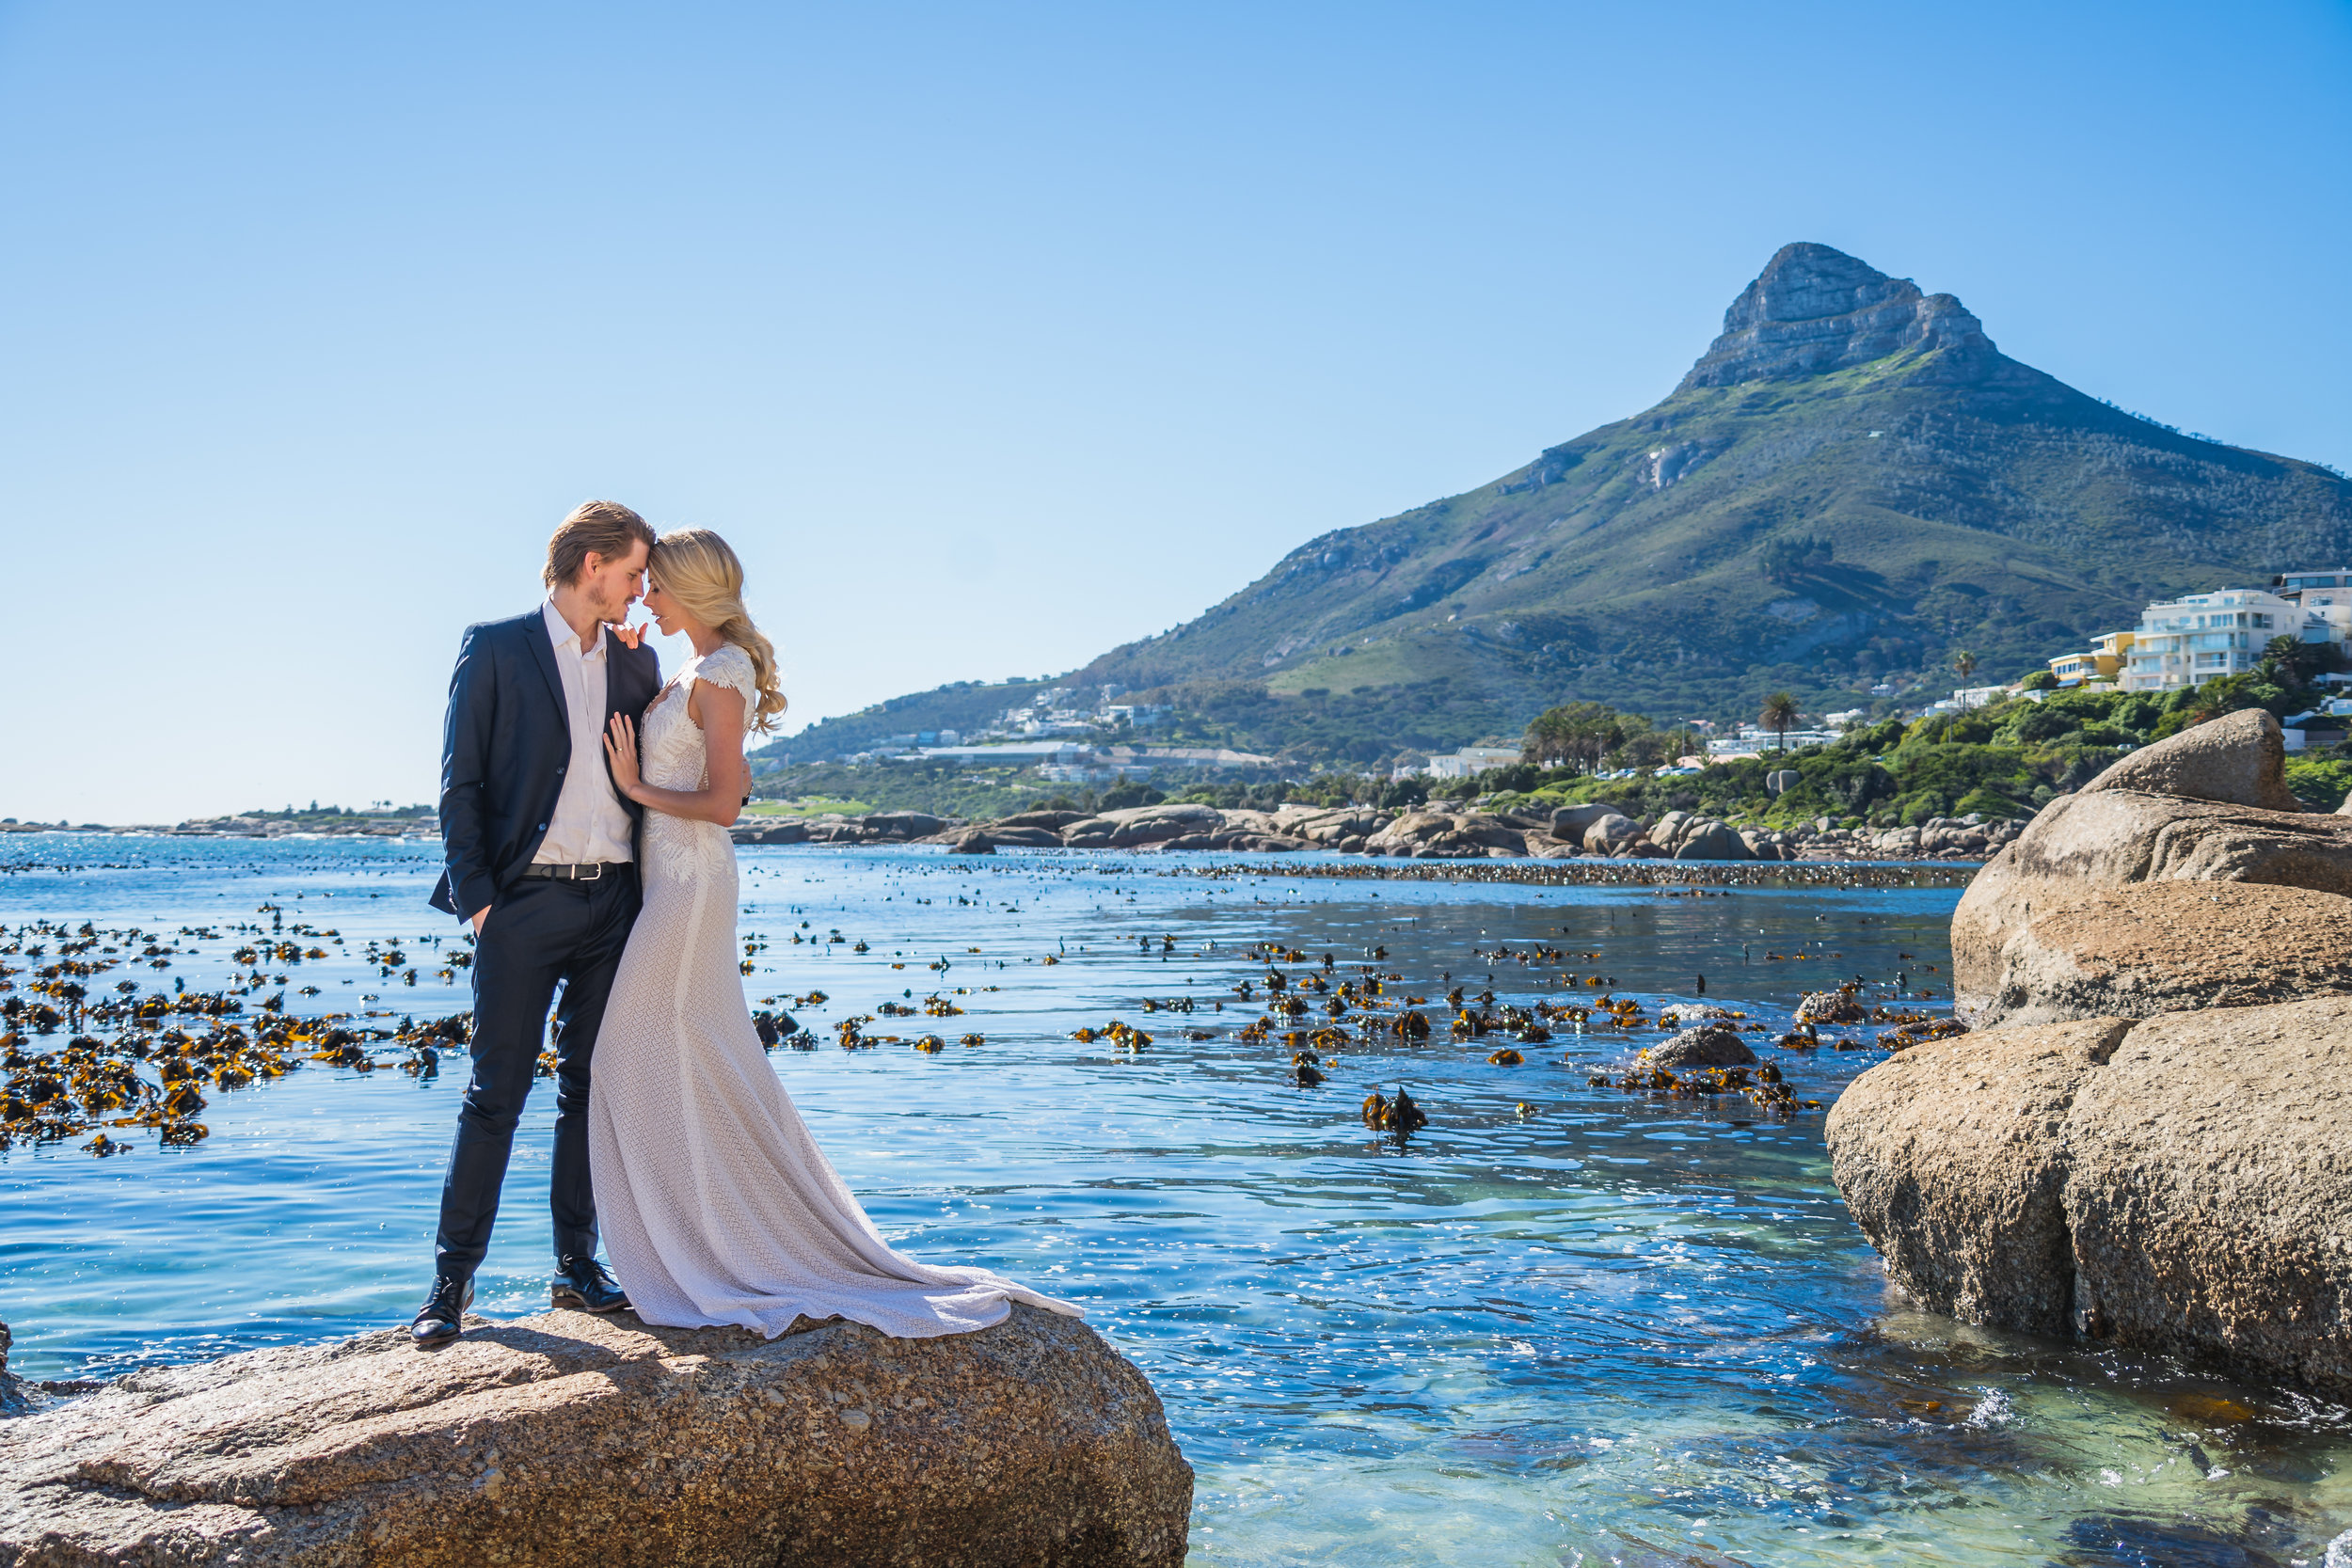 Cape Town Elopements - Stunning in every way